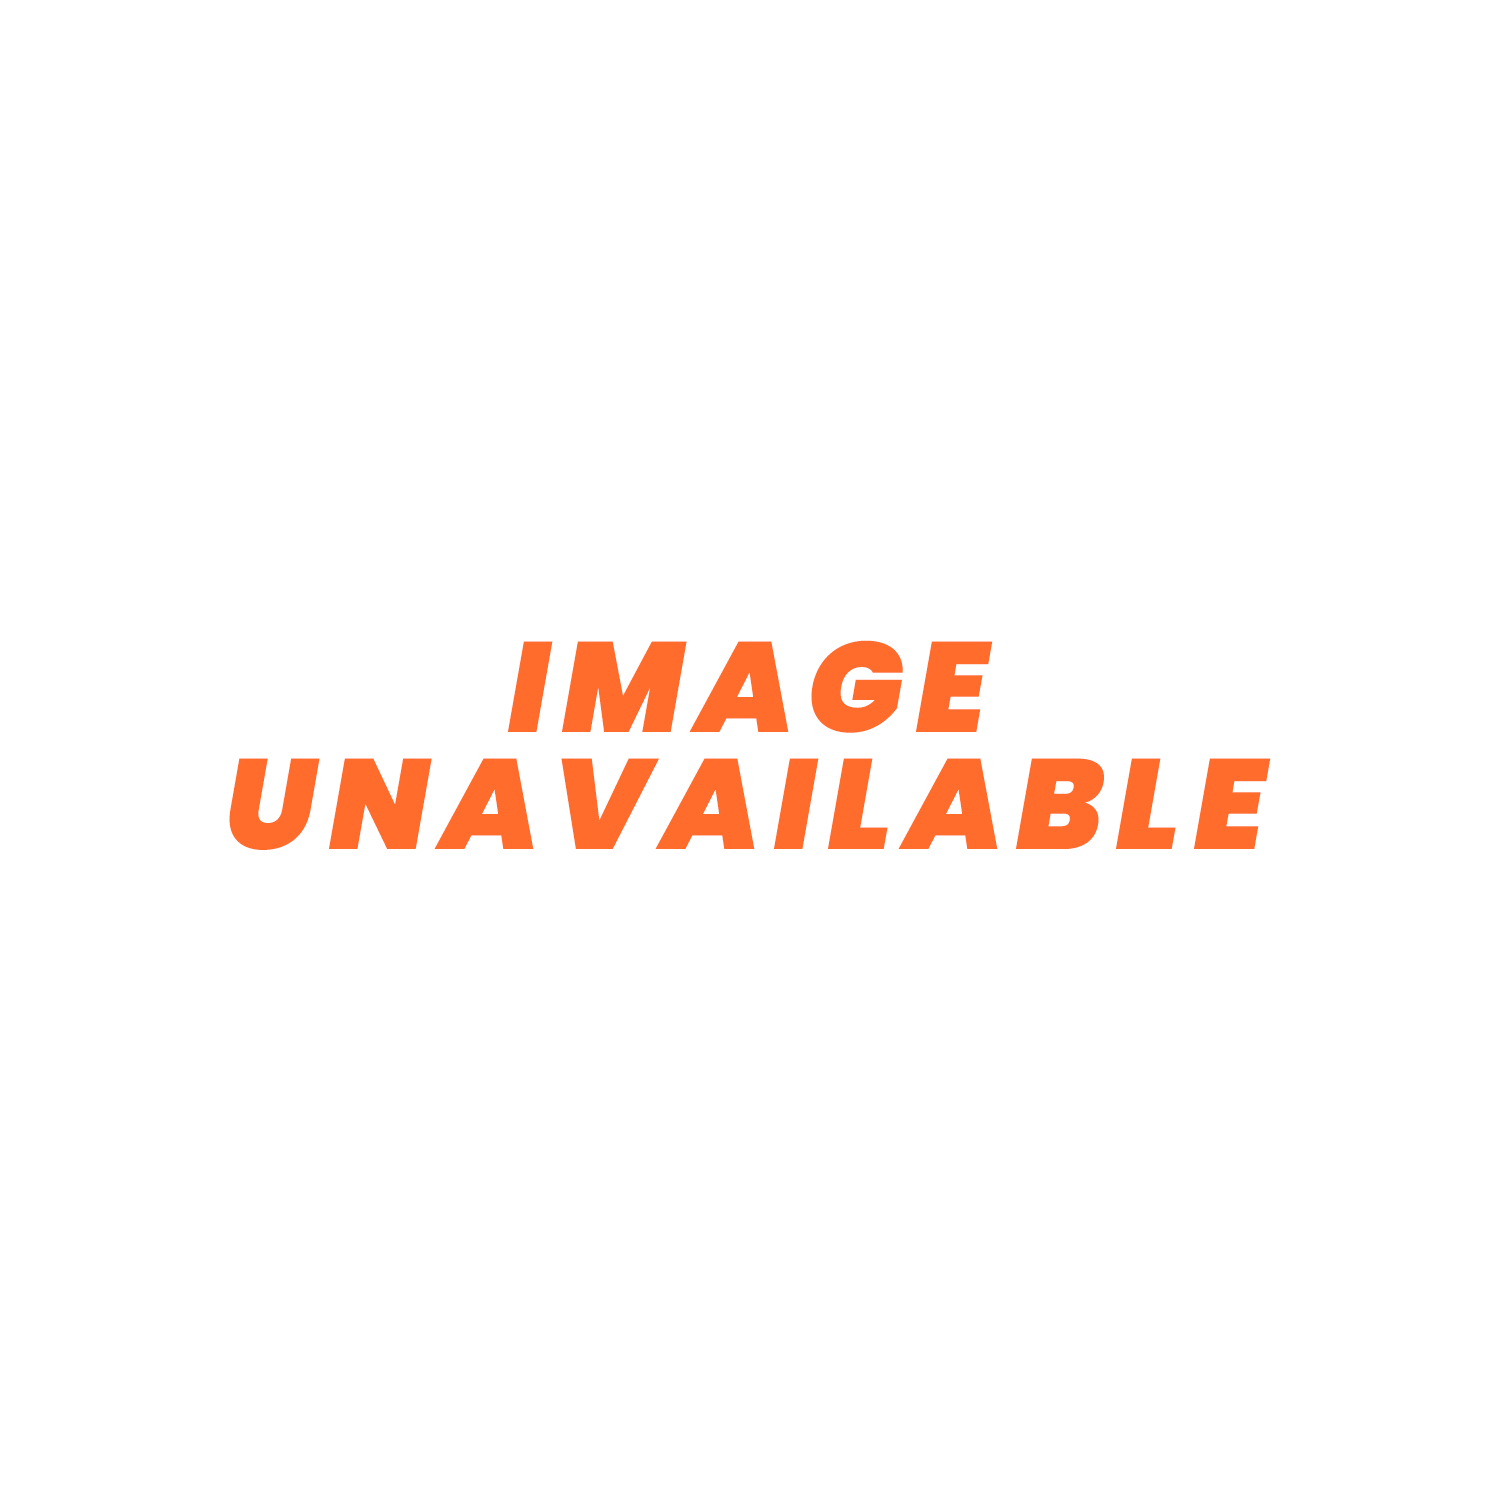 Standard Blade Fuse Box with LEDs Spade - 10 Way